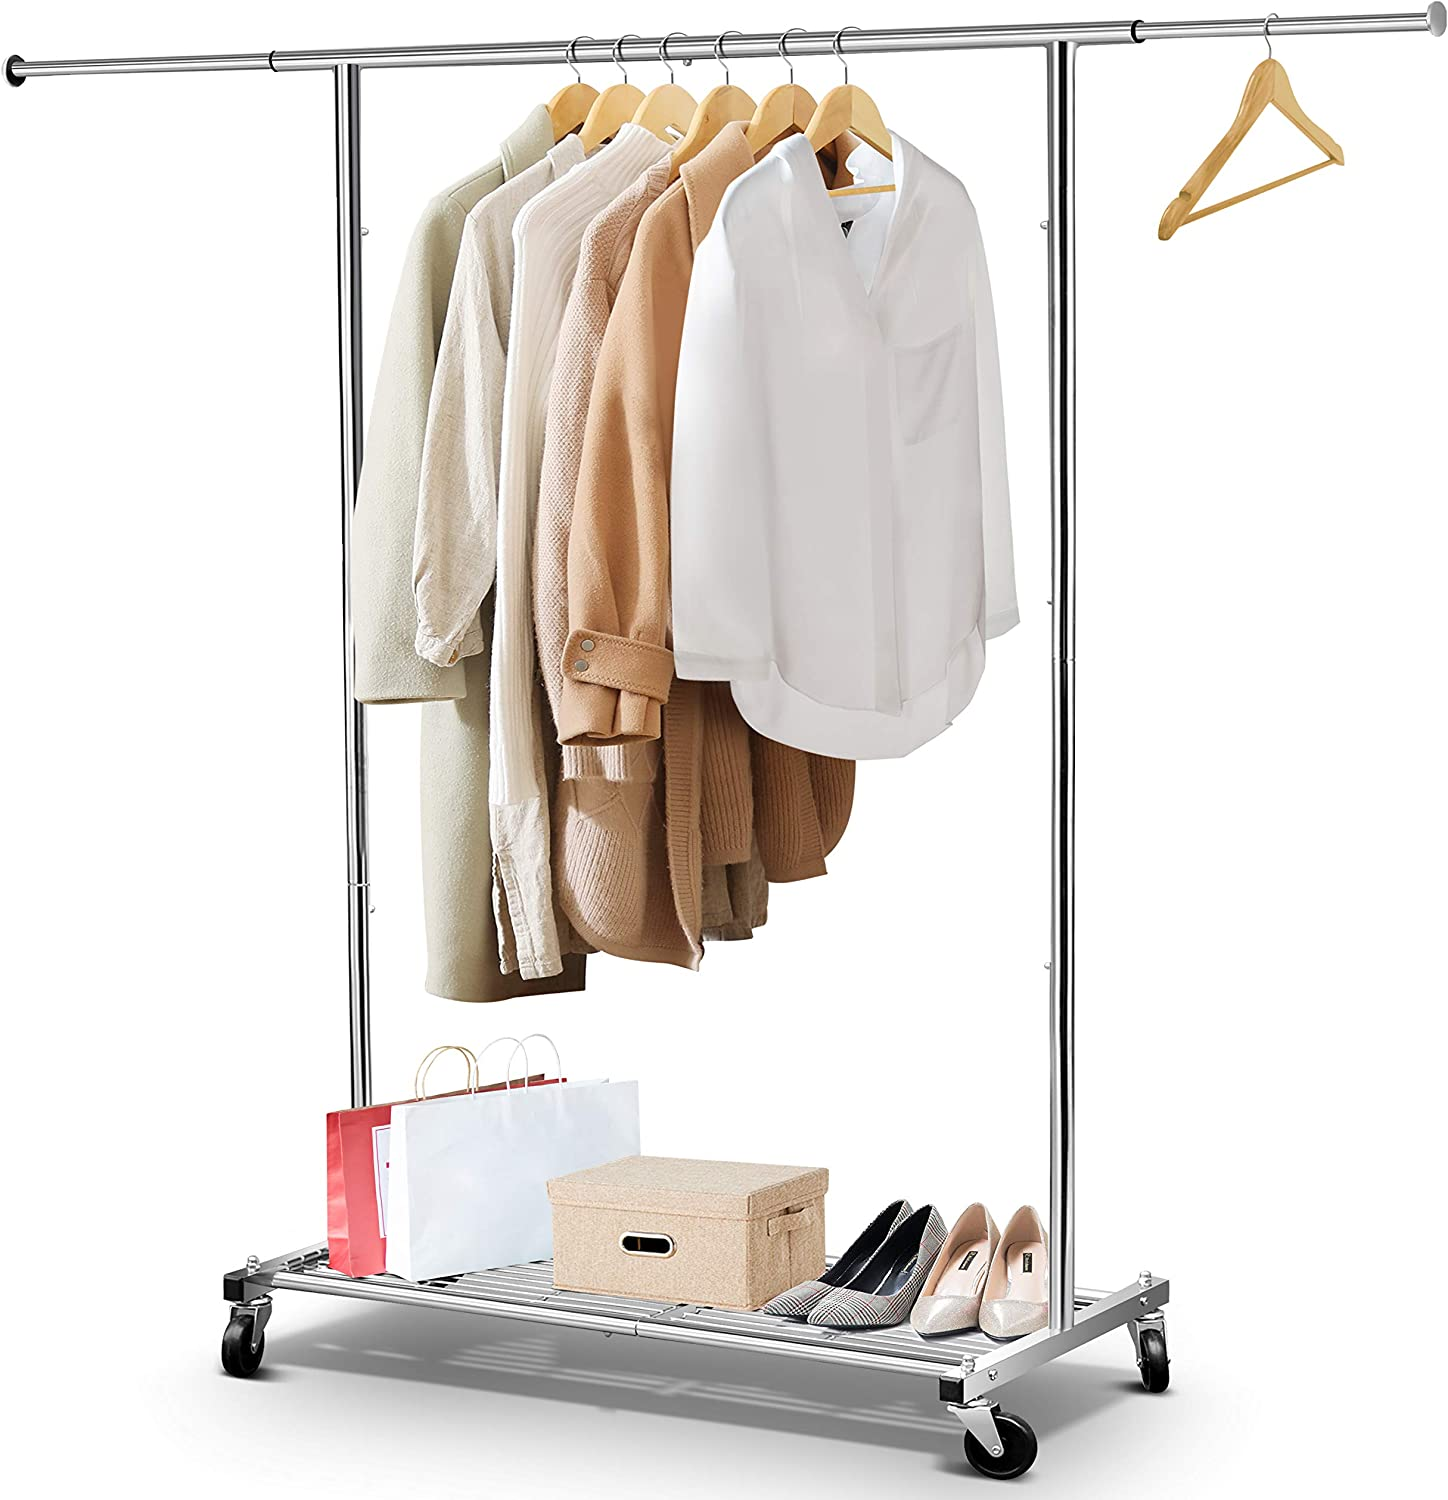 Simple Trending Clothes Garment Rack, Heavy Duty Commercial Grade Clothing Rolling Rack with Mesh Storage Shelf on Wheels and Extendable Hanging Rail, Holds up to 150 lbs, Chrome